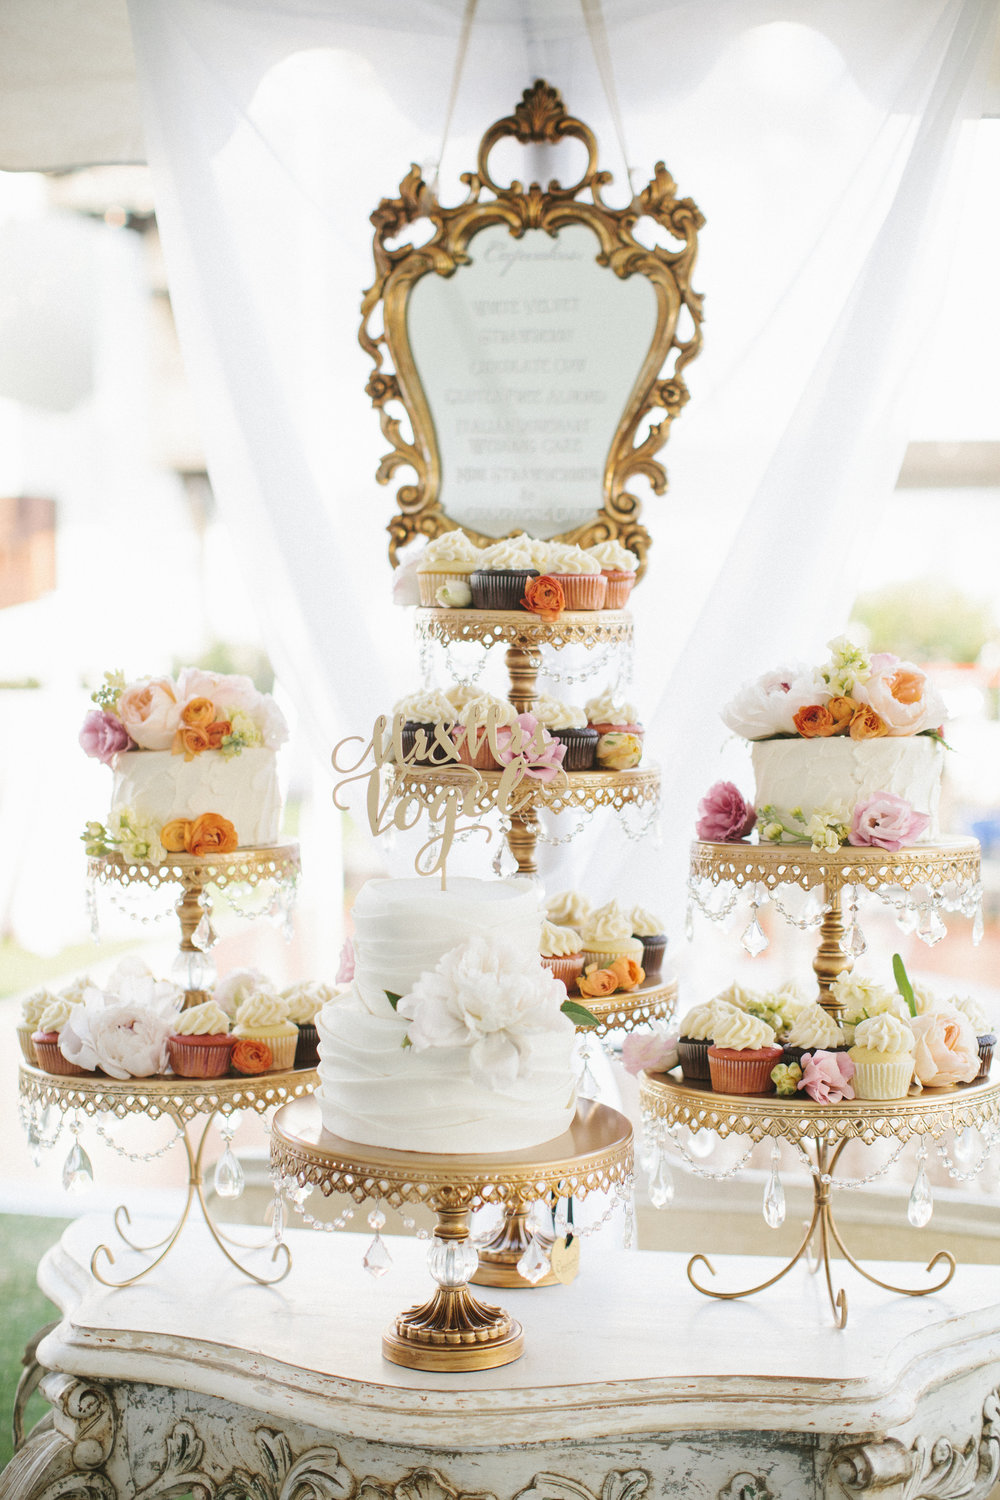 Cake & Sweets:  Sweet for Sirten     photo:  @lesliehollingsworthphoto